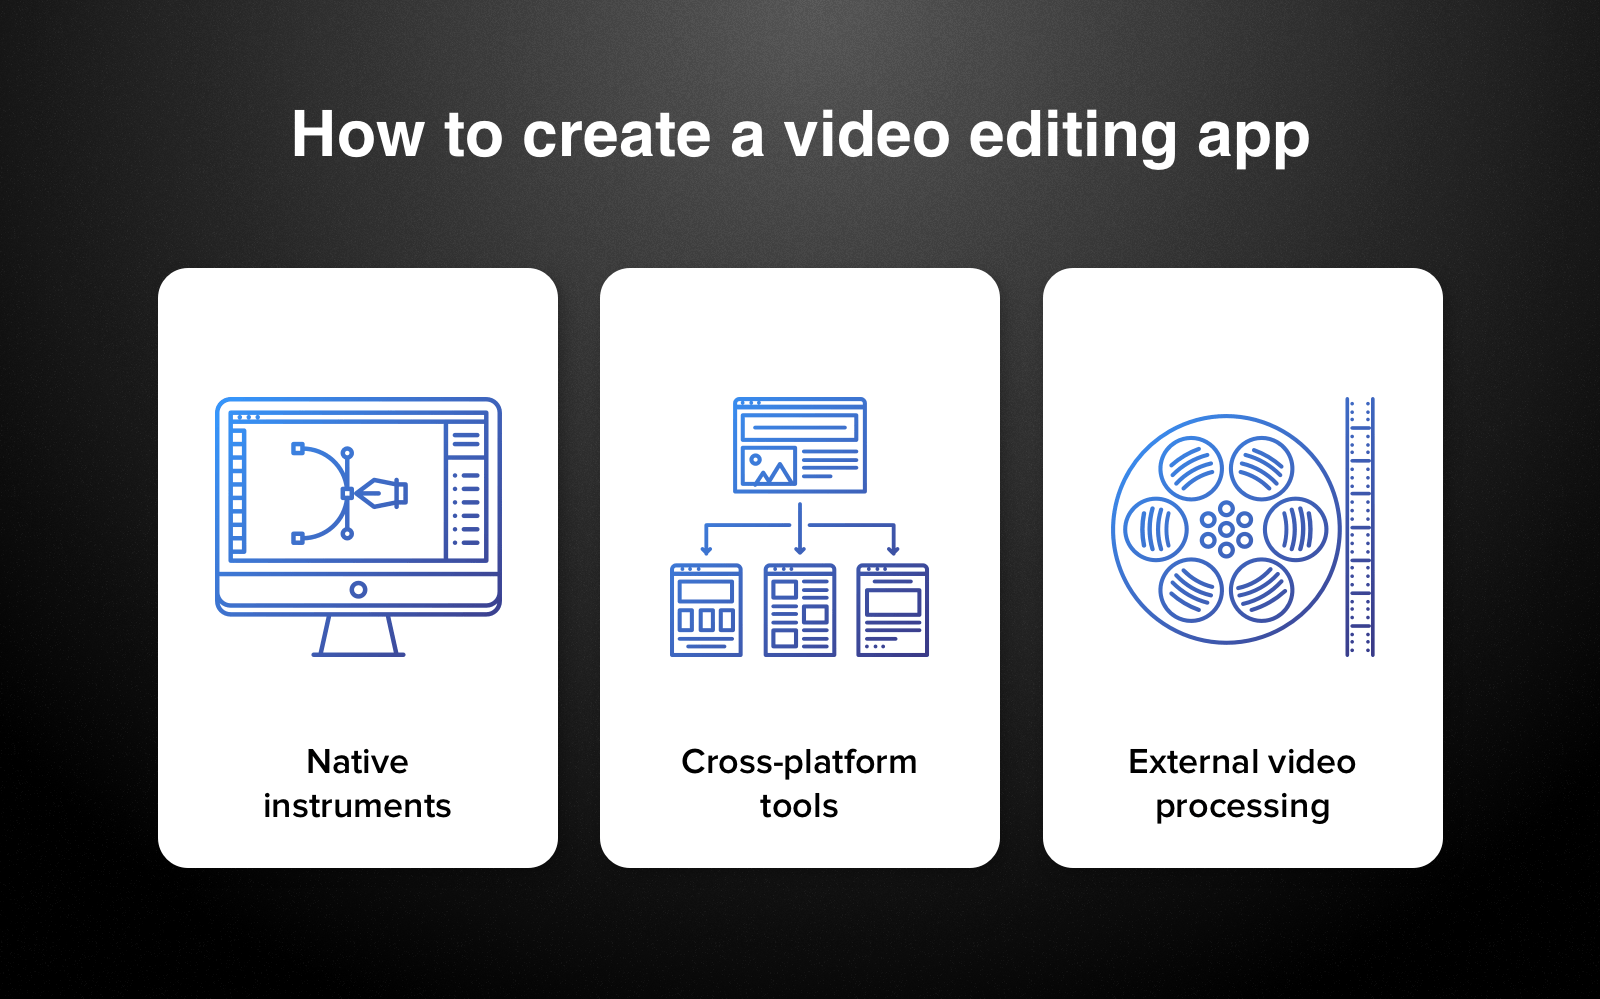 application used for video editing